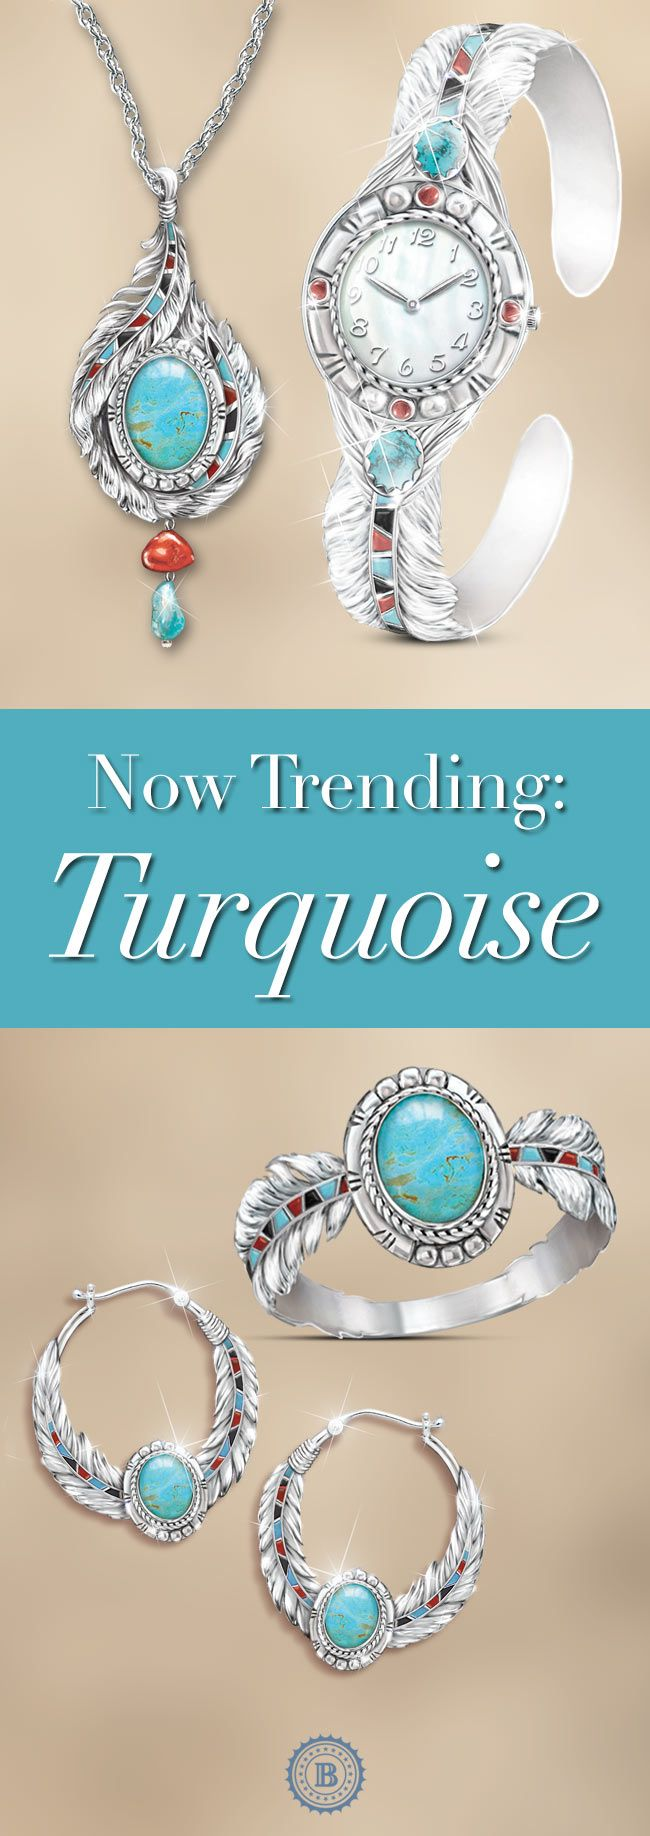 Liven your spring with the vivid colors of the southwest. Turquoise is currently hot and in style, so don't miss this original turquoise jewelry designs.